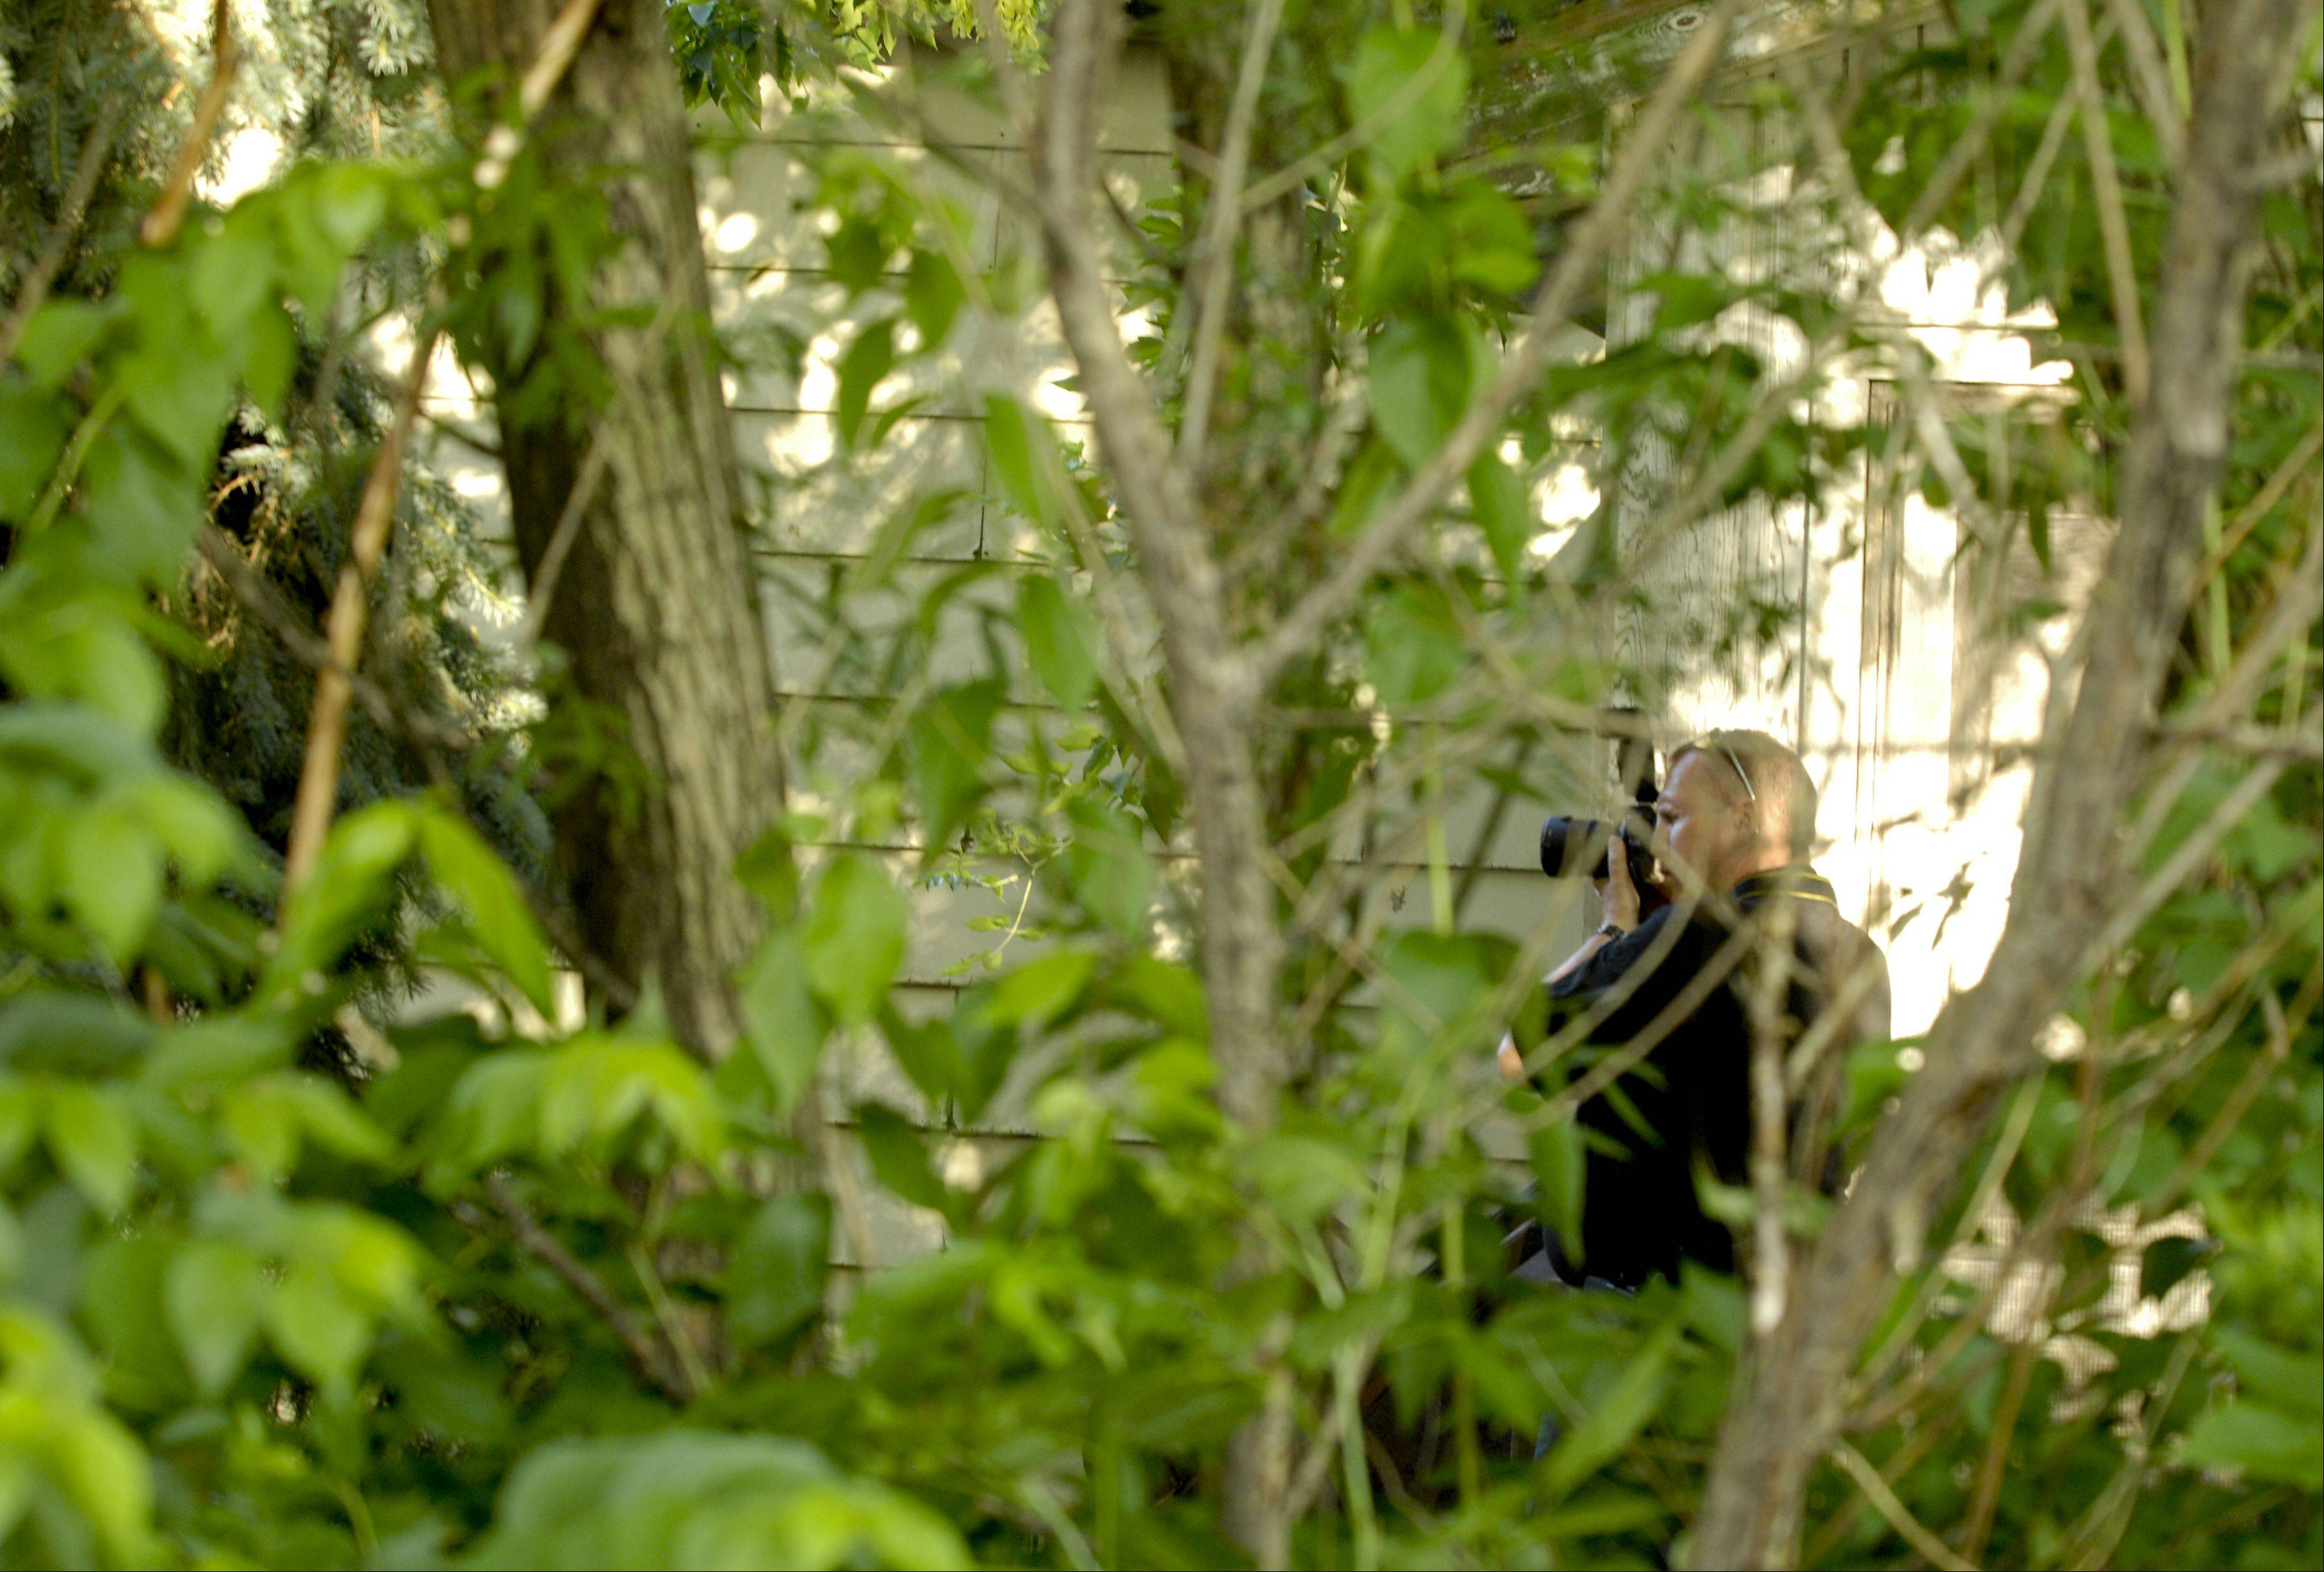 A police investigator takes photographs Tuesday in the backyard of a home on Oldfield Road in DuPage County where four members of a family were found dead.